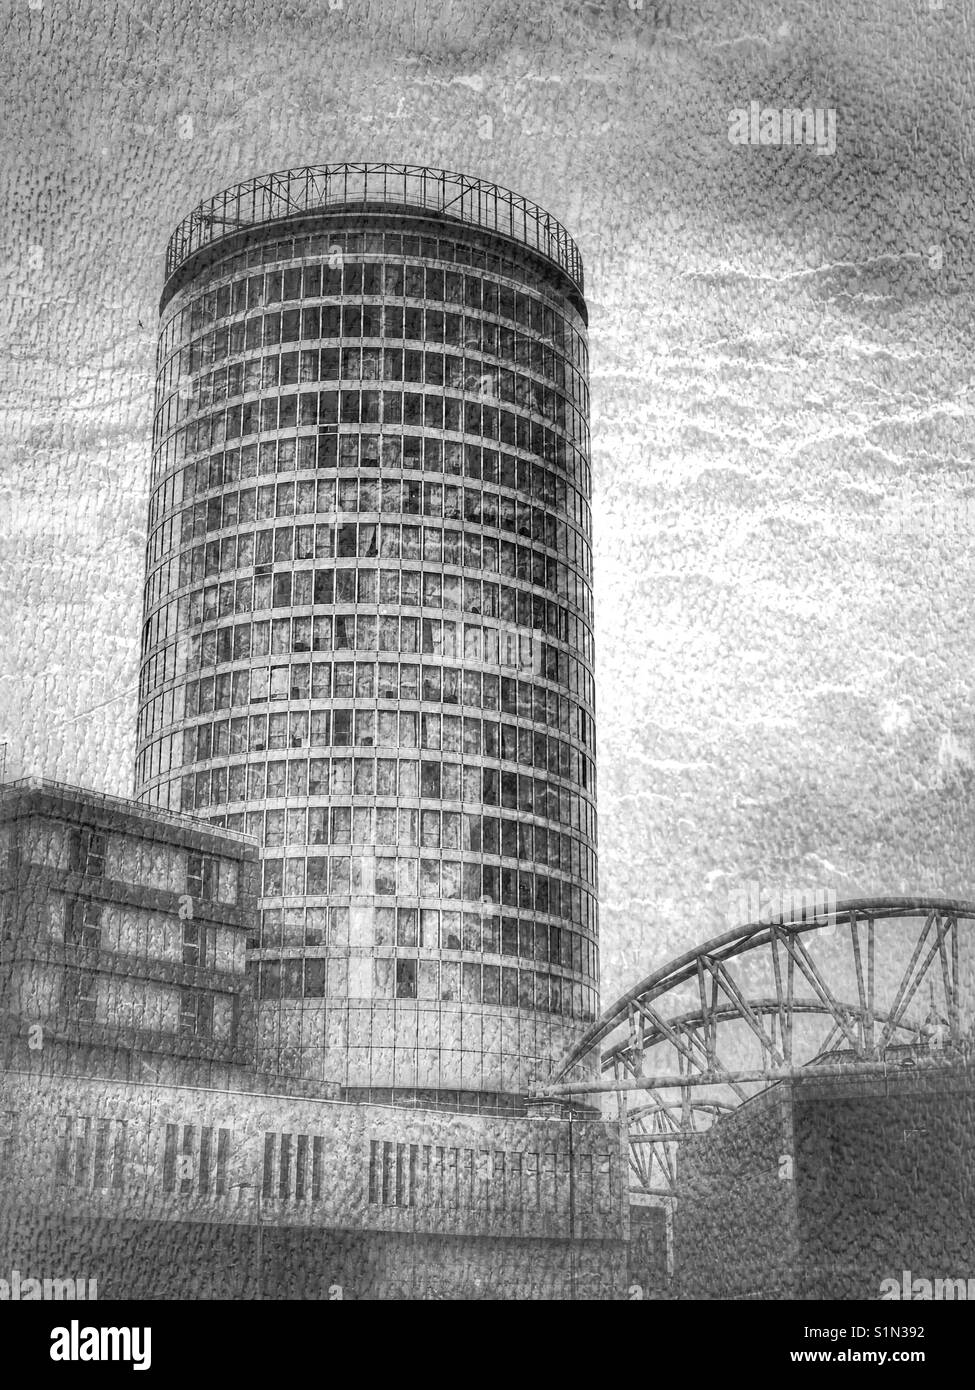 The landmark Rotunda building, Birmingham, UK - Stock Image